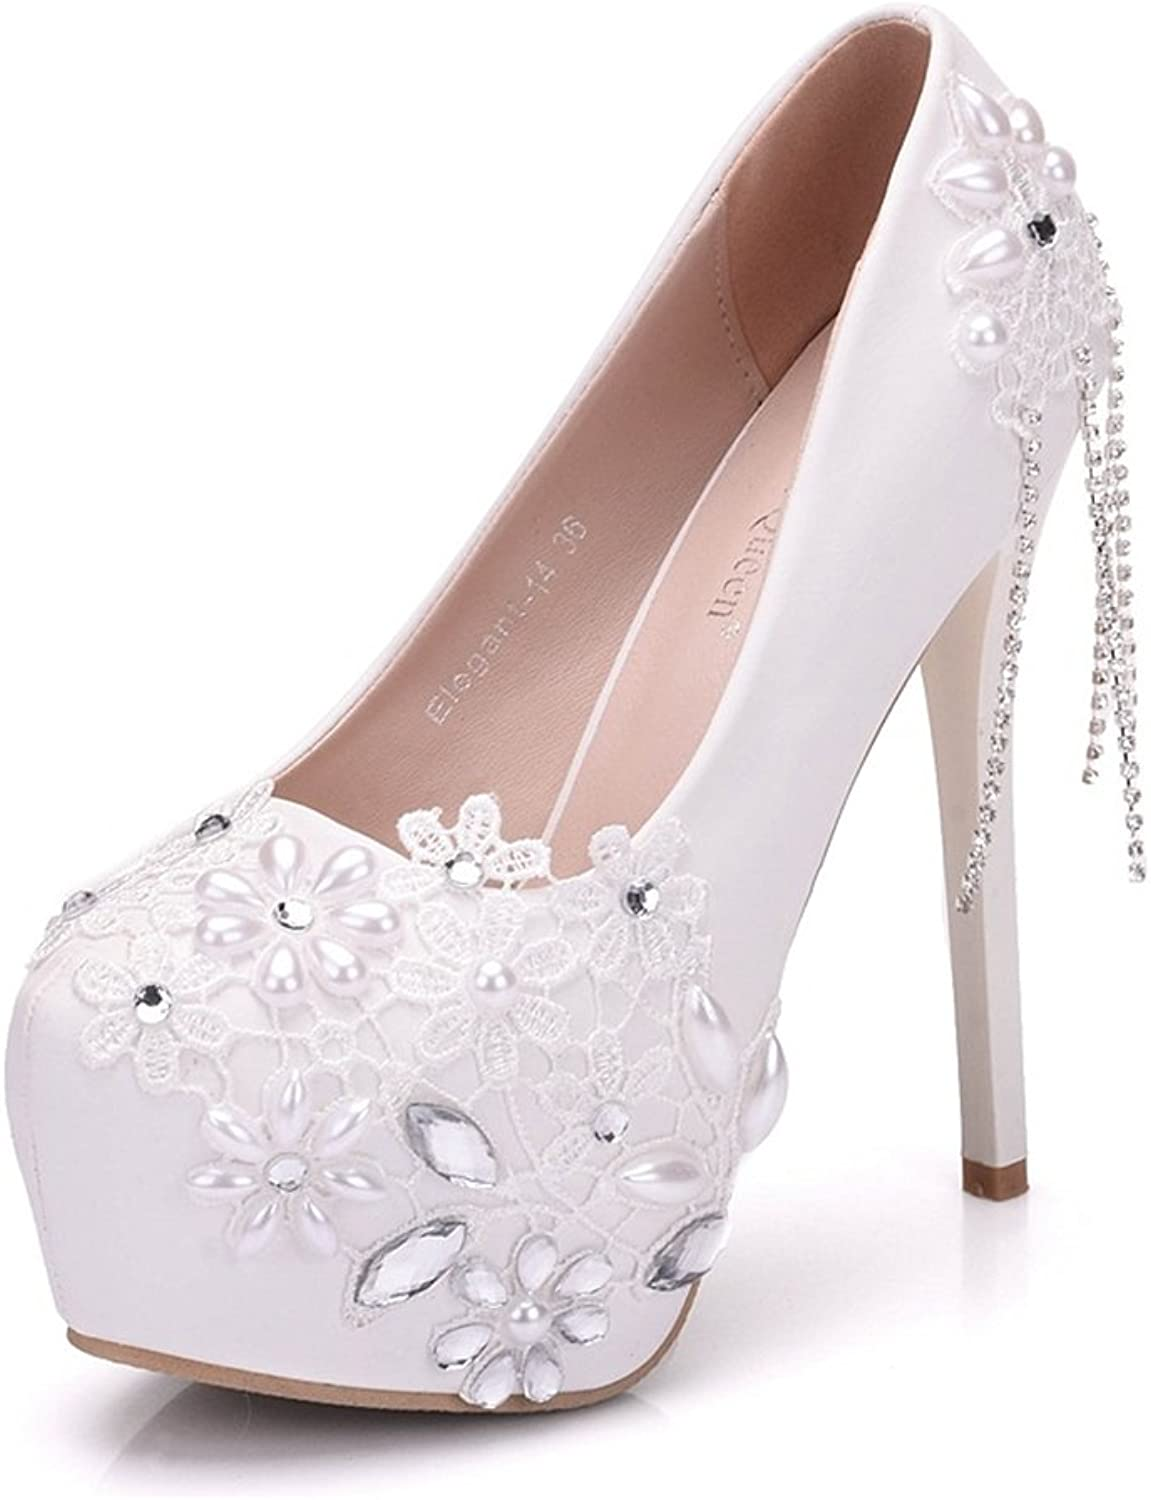 SUNNY Store White Pearl Lace Wedding shoes Bridal Bridesmaid High Heels Platform Pumps